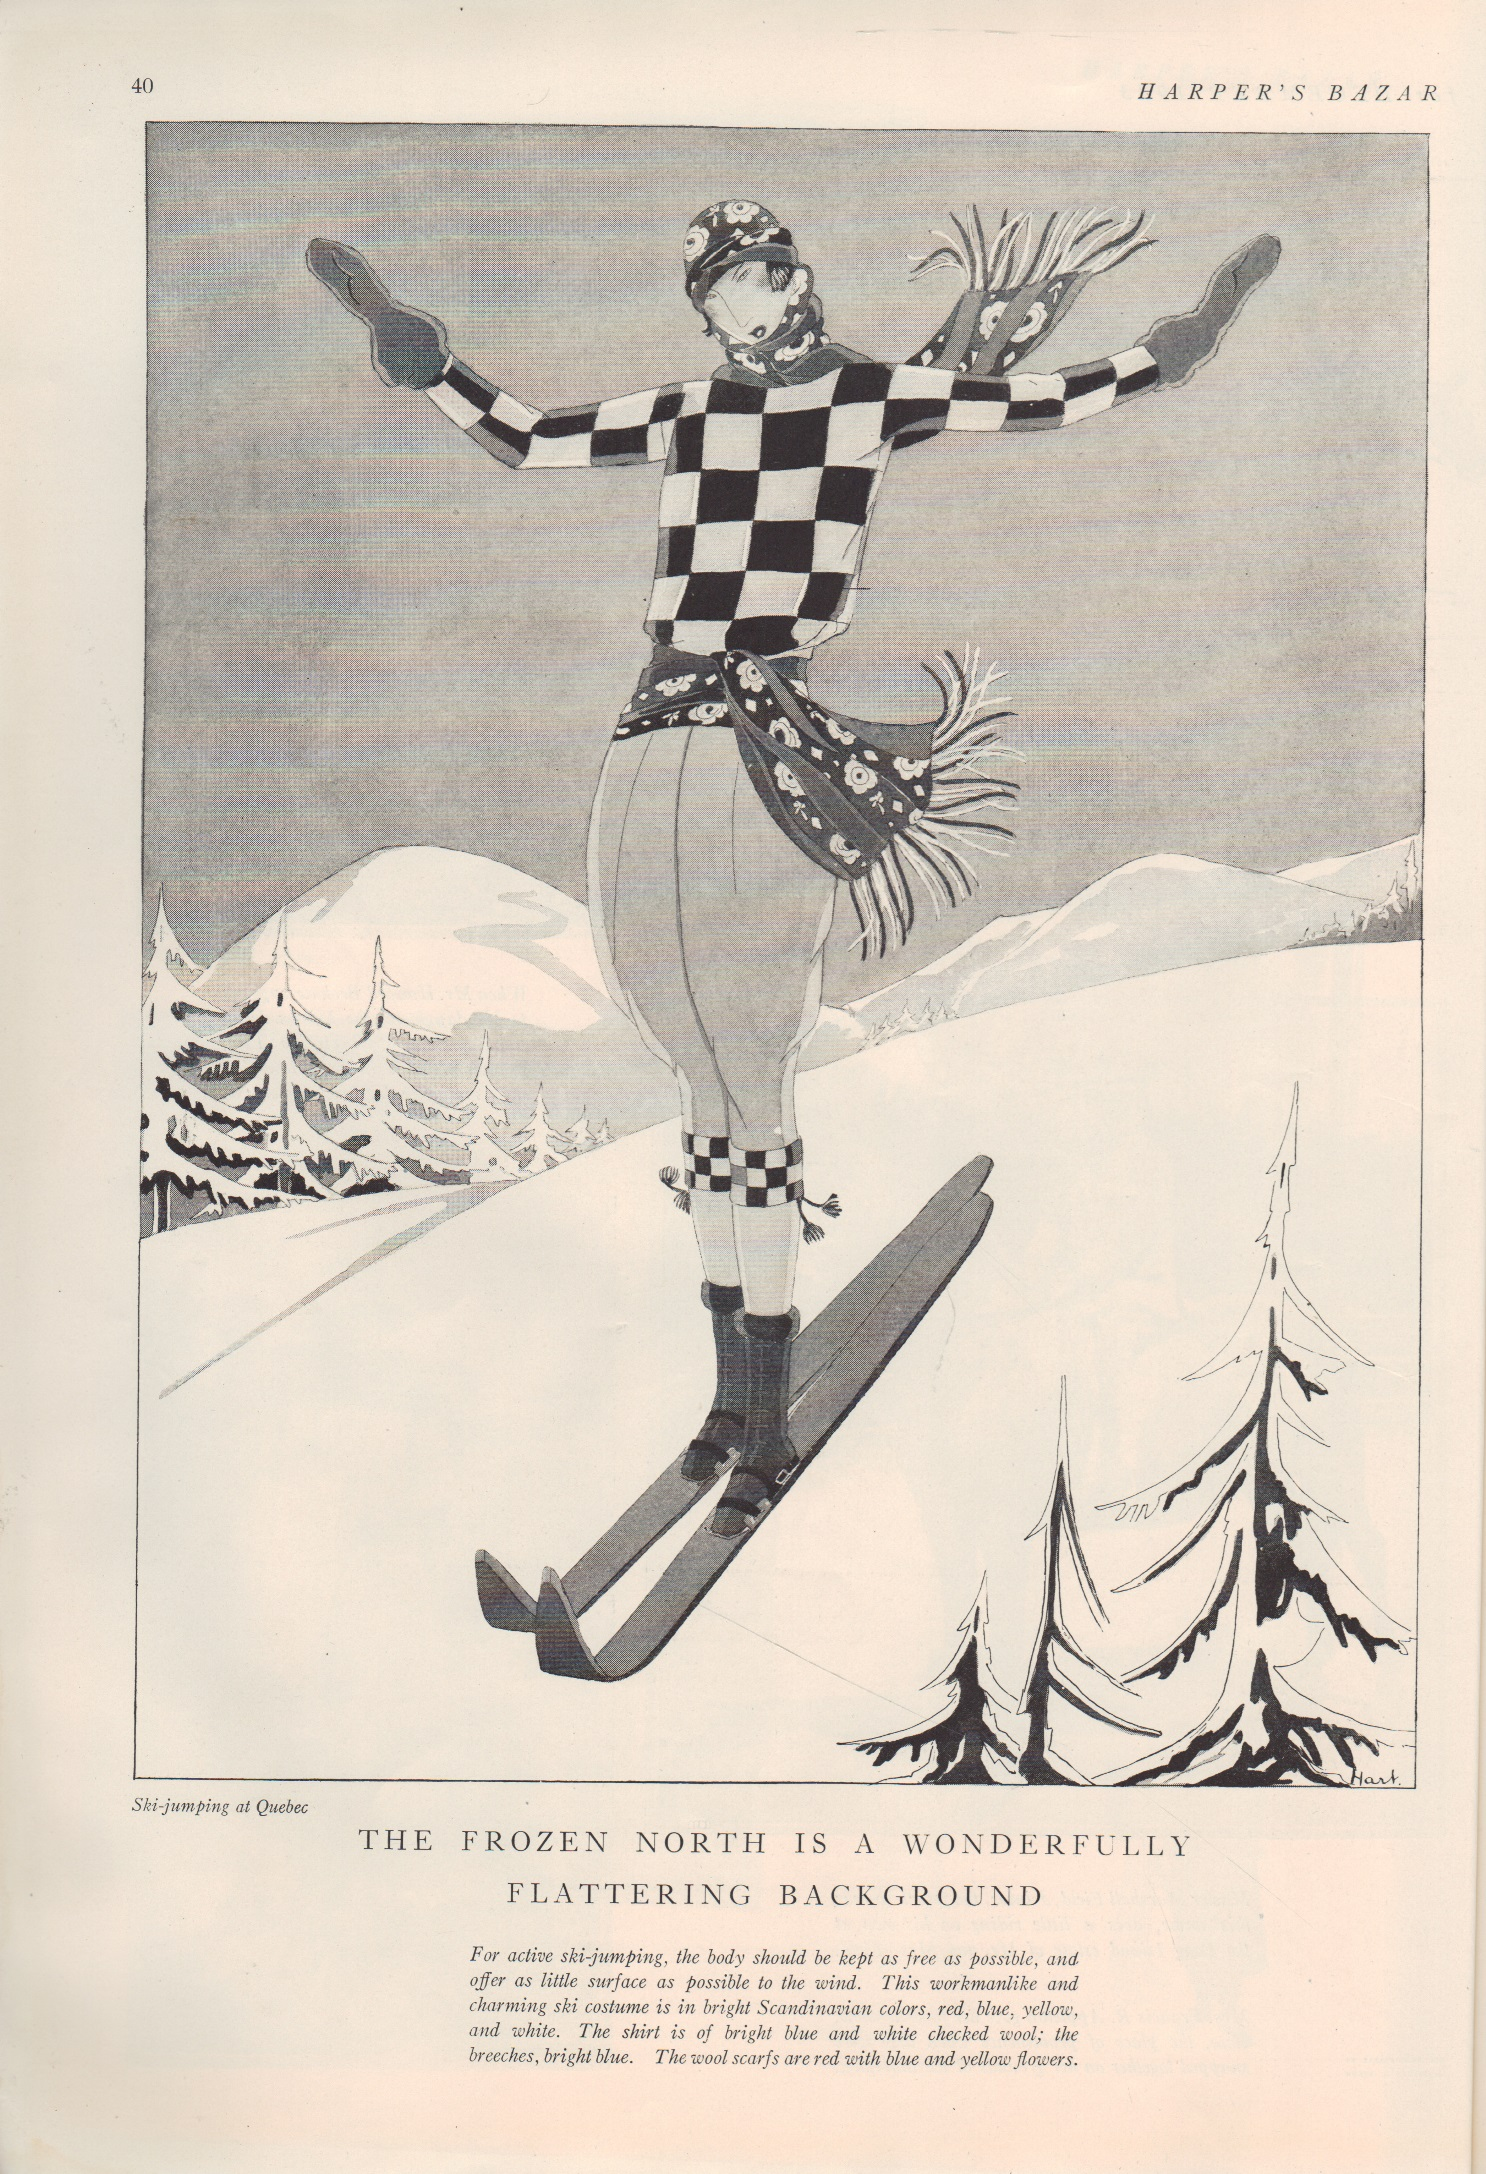 Image for Harper's Bazar [Bazaar], December 1923 Christmas Number